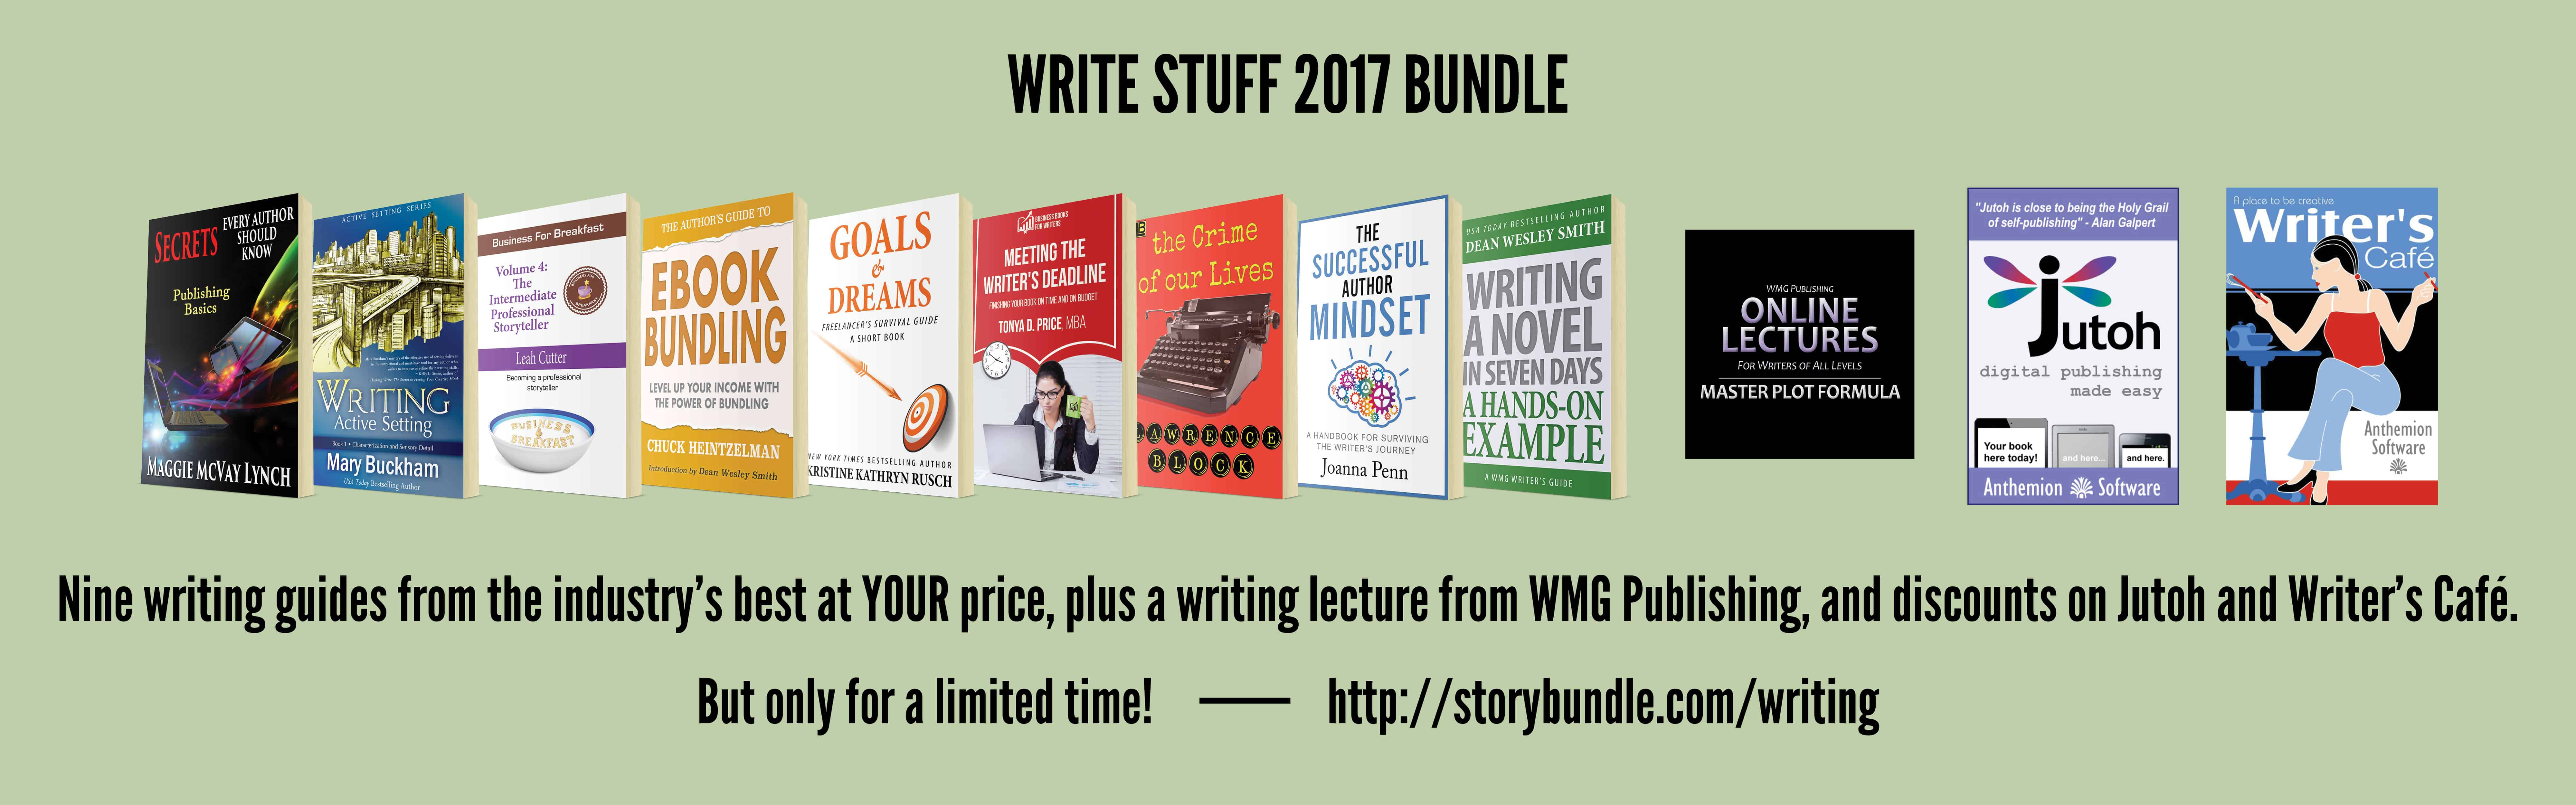 The Write Stuff Storybundle has great booksk for indie publishers.